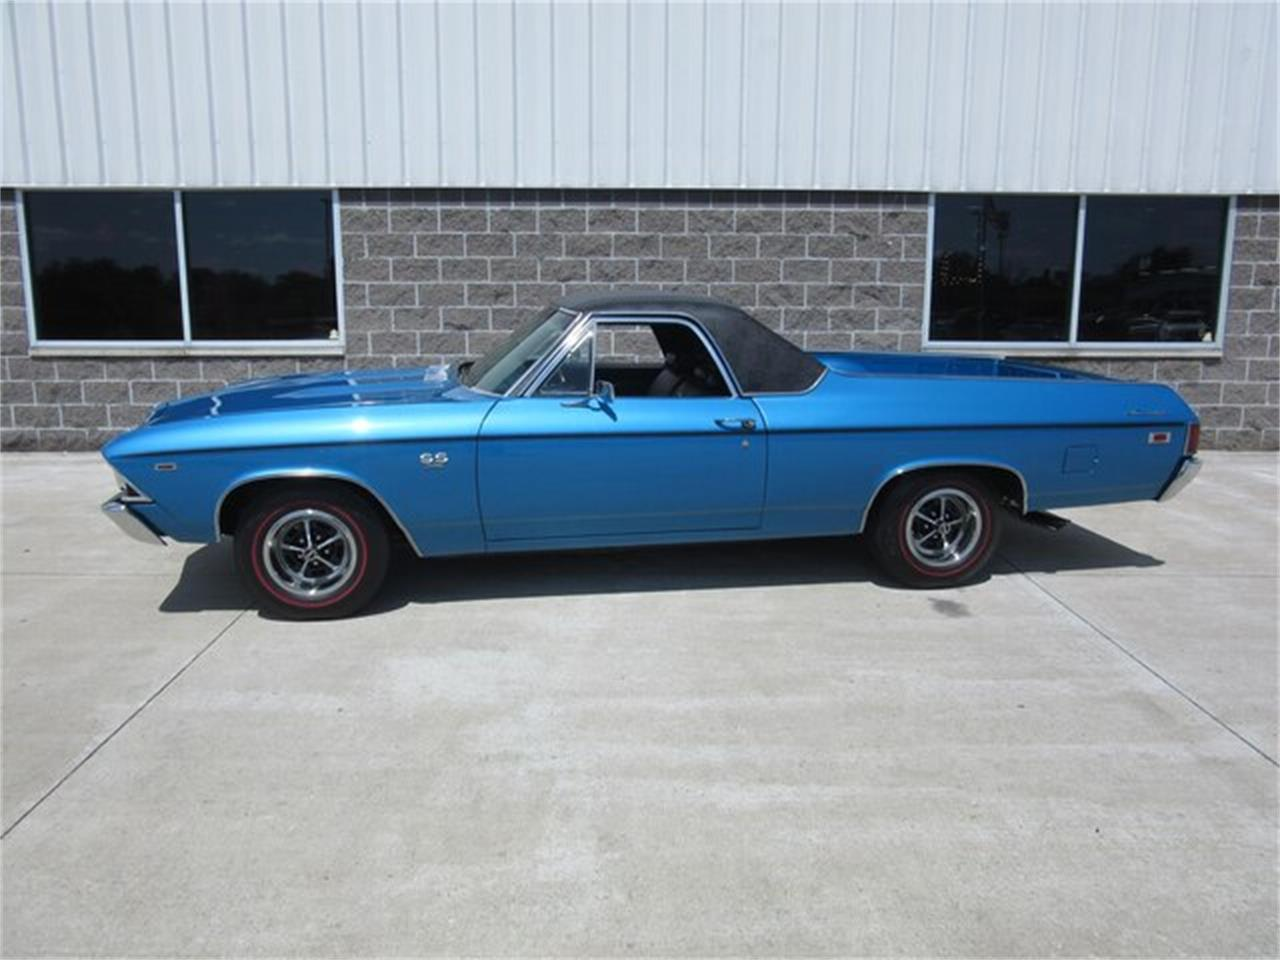 Large Picture of 1969 El Camino located in Indiana - $38,500.00 - QTRB